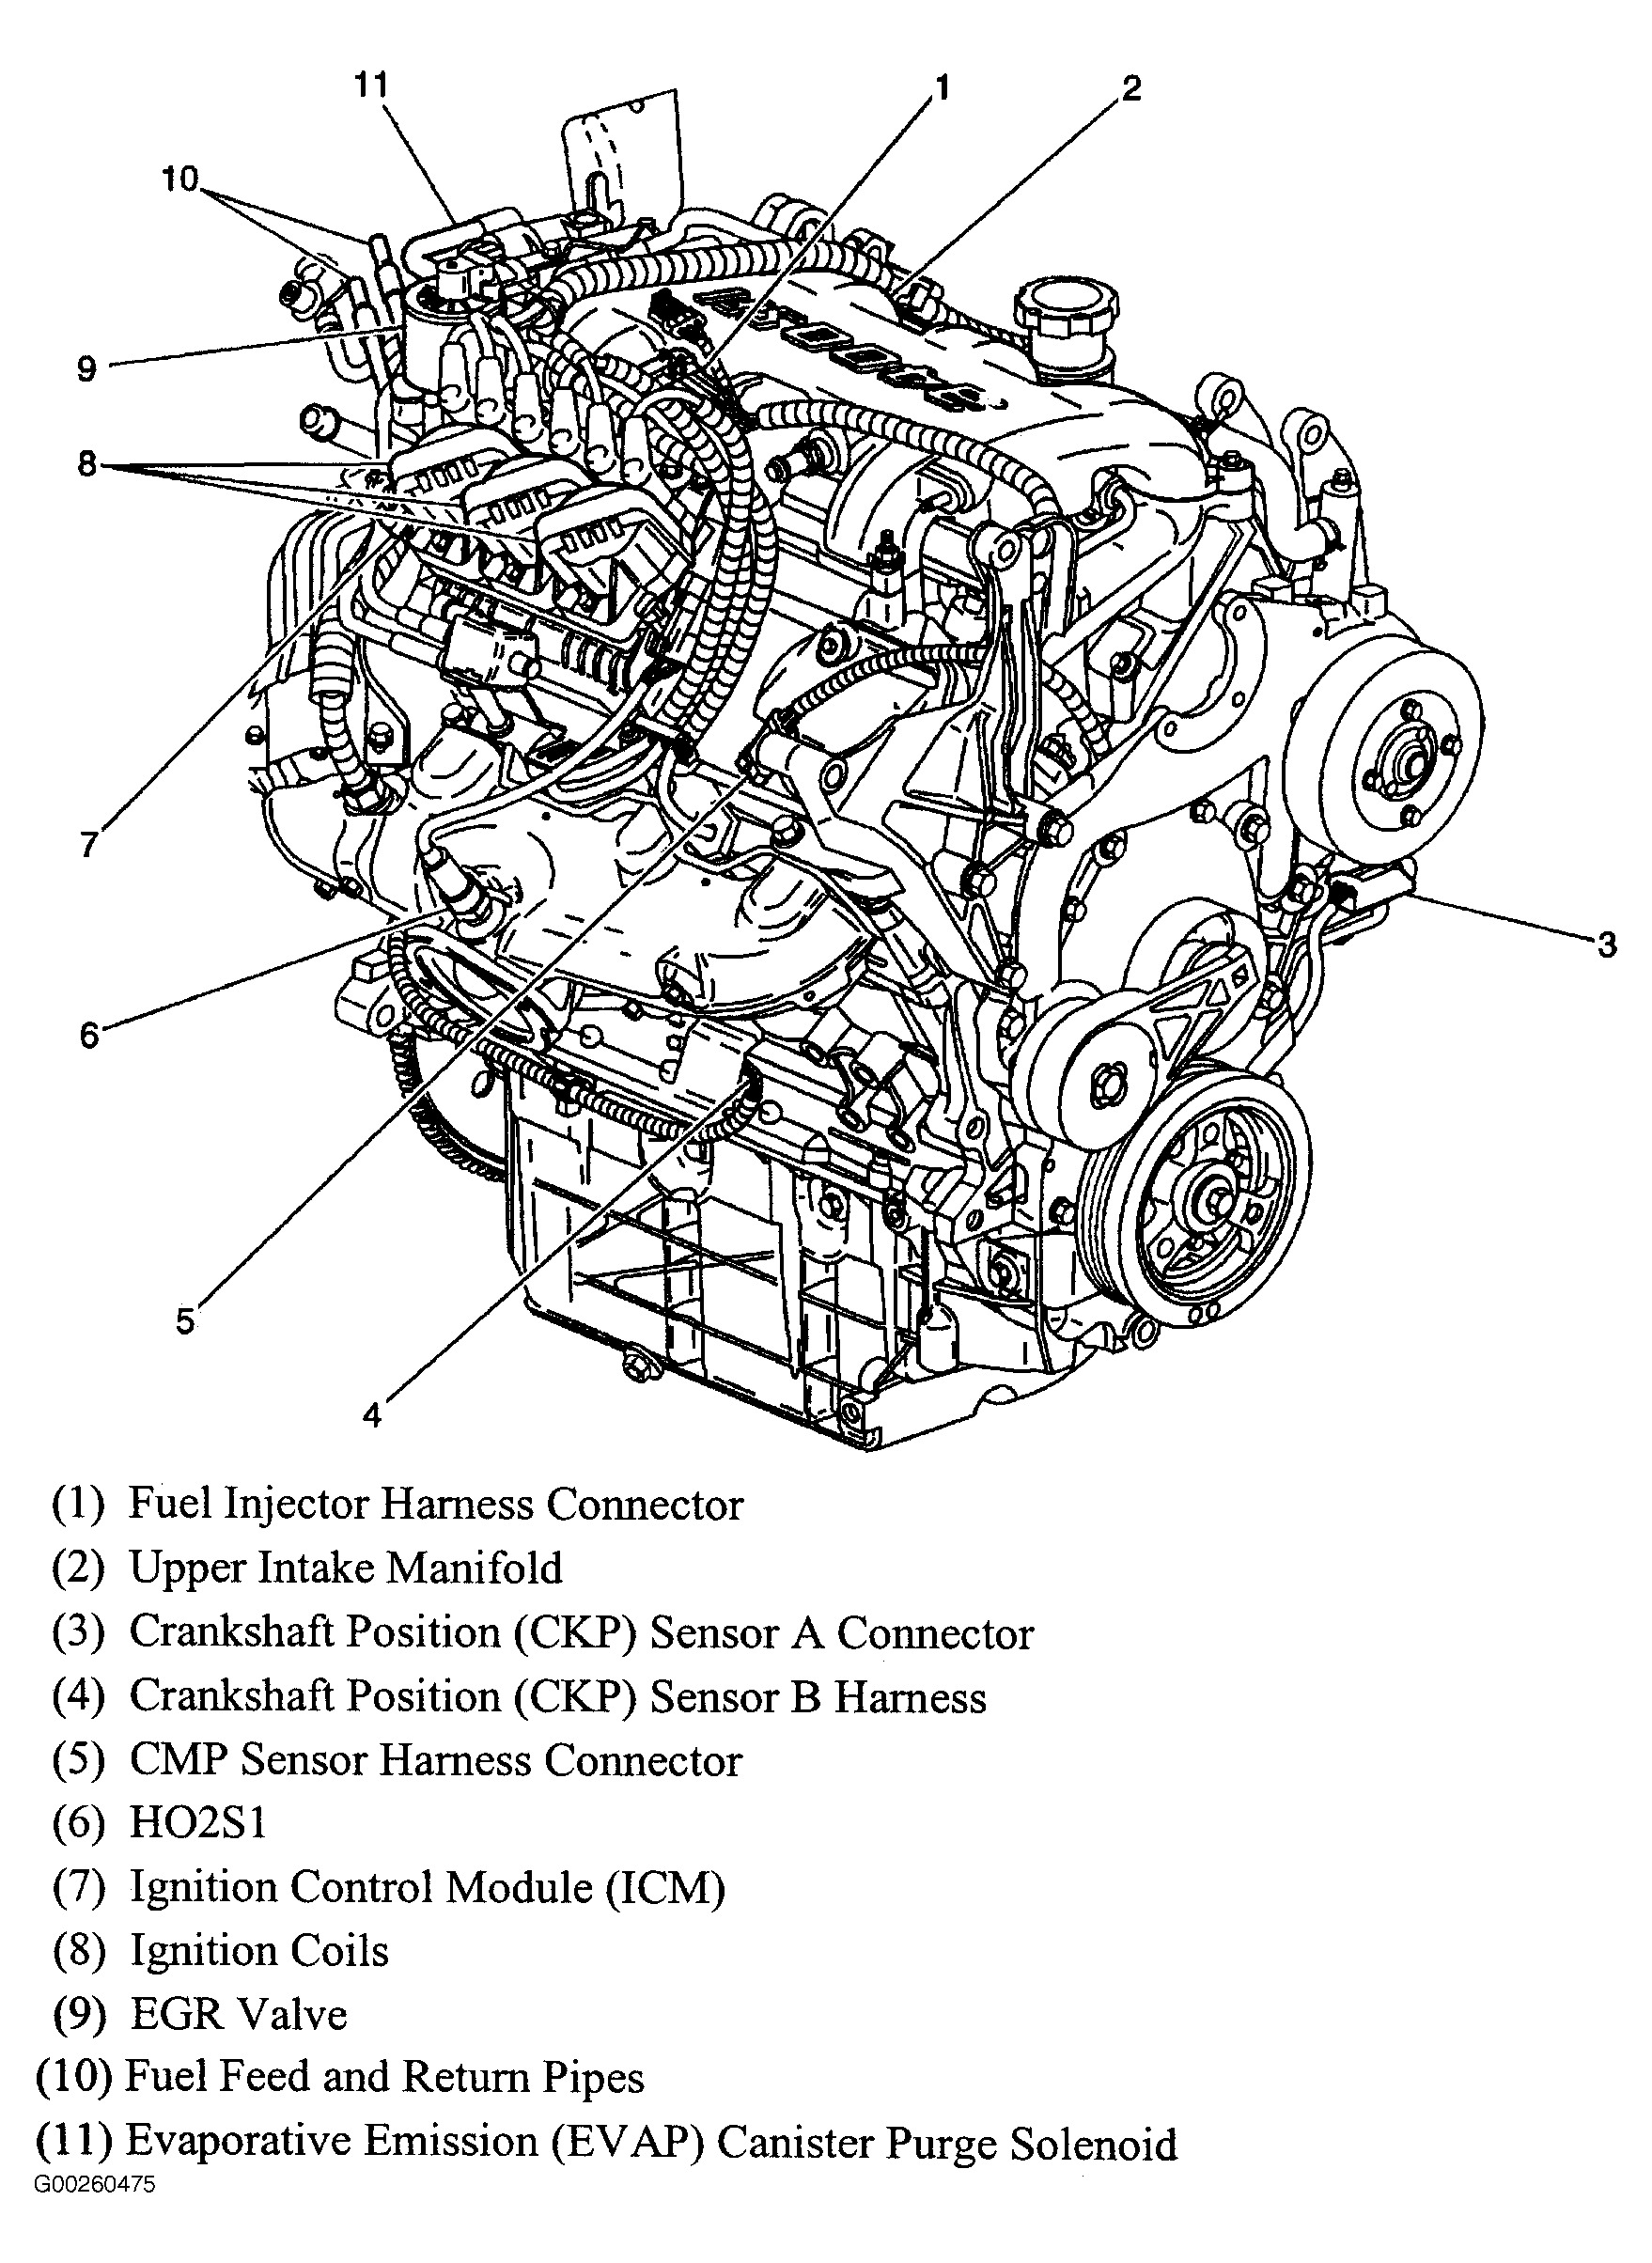 Chevrolet Venture Crankshaft And Camshaft Locations